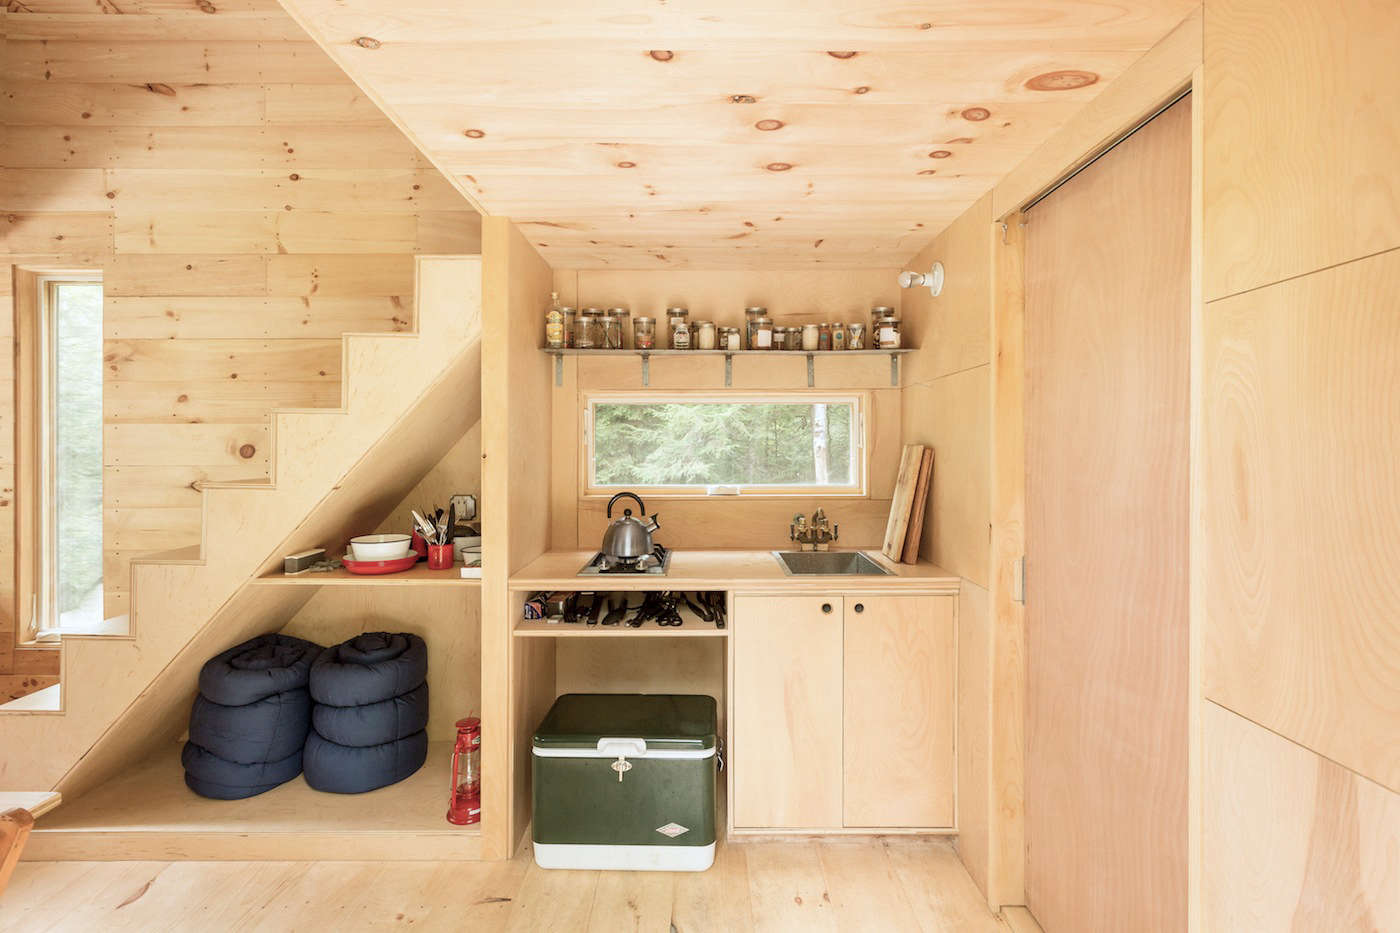 Steal This Look A Stylish Camp Kitchen in a Plywood Summer Cabin A cross section of the cabin kitchen and under stairs storage. Photograph fromGetaway: Instant Camping for the Millennial Set.